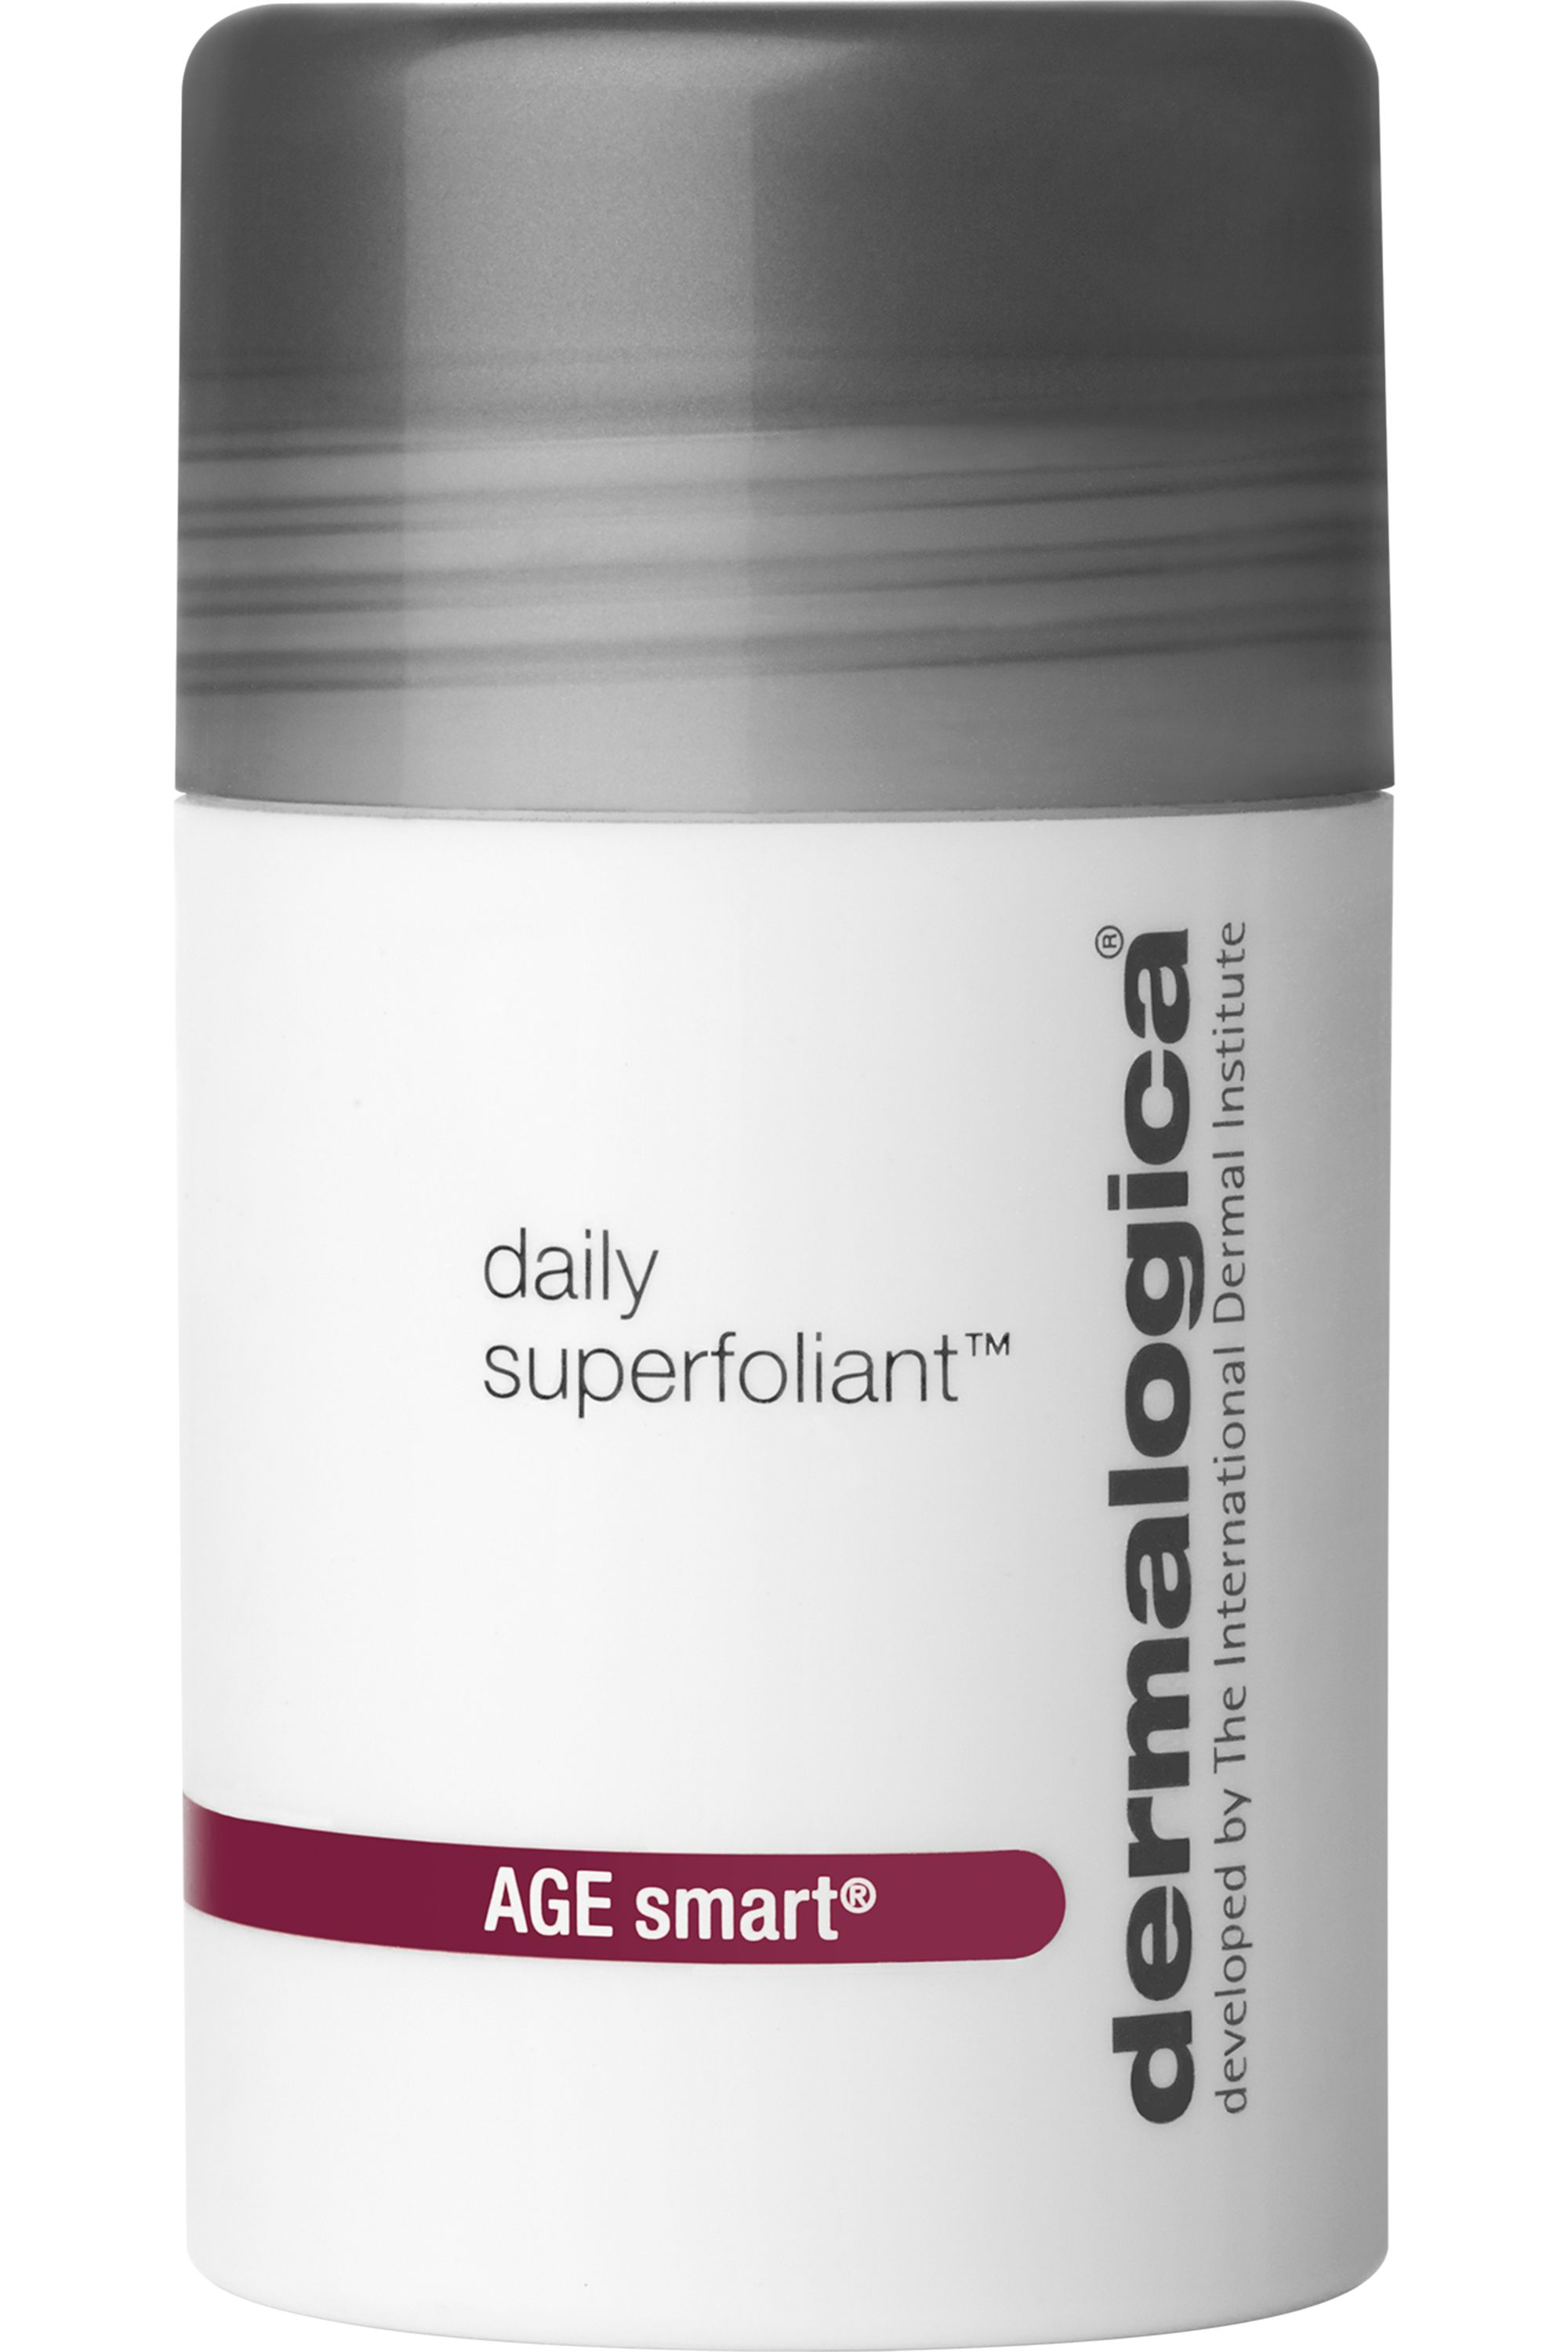 Blissim : Dermalogica - Gommage mécanique et enzymatique anti-pollution au charbon actif Daily Superfoliant - 13g